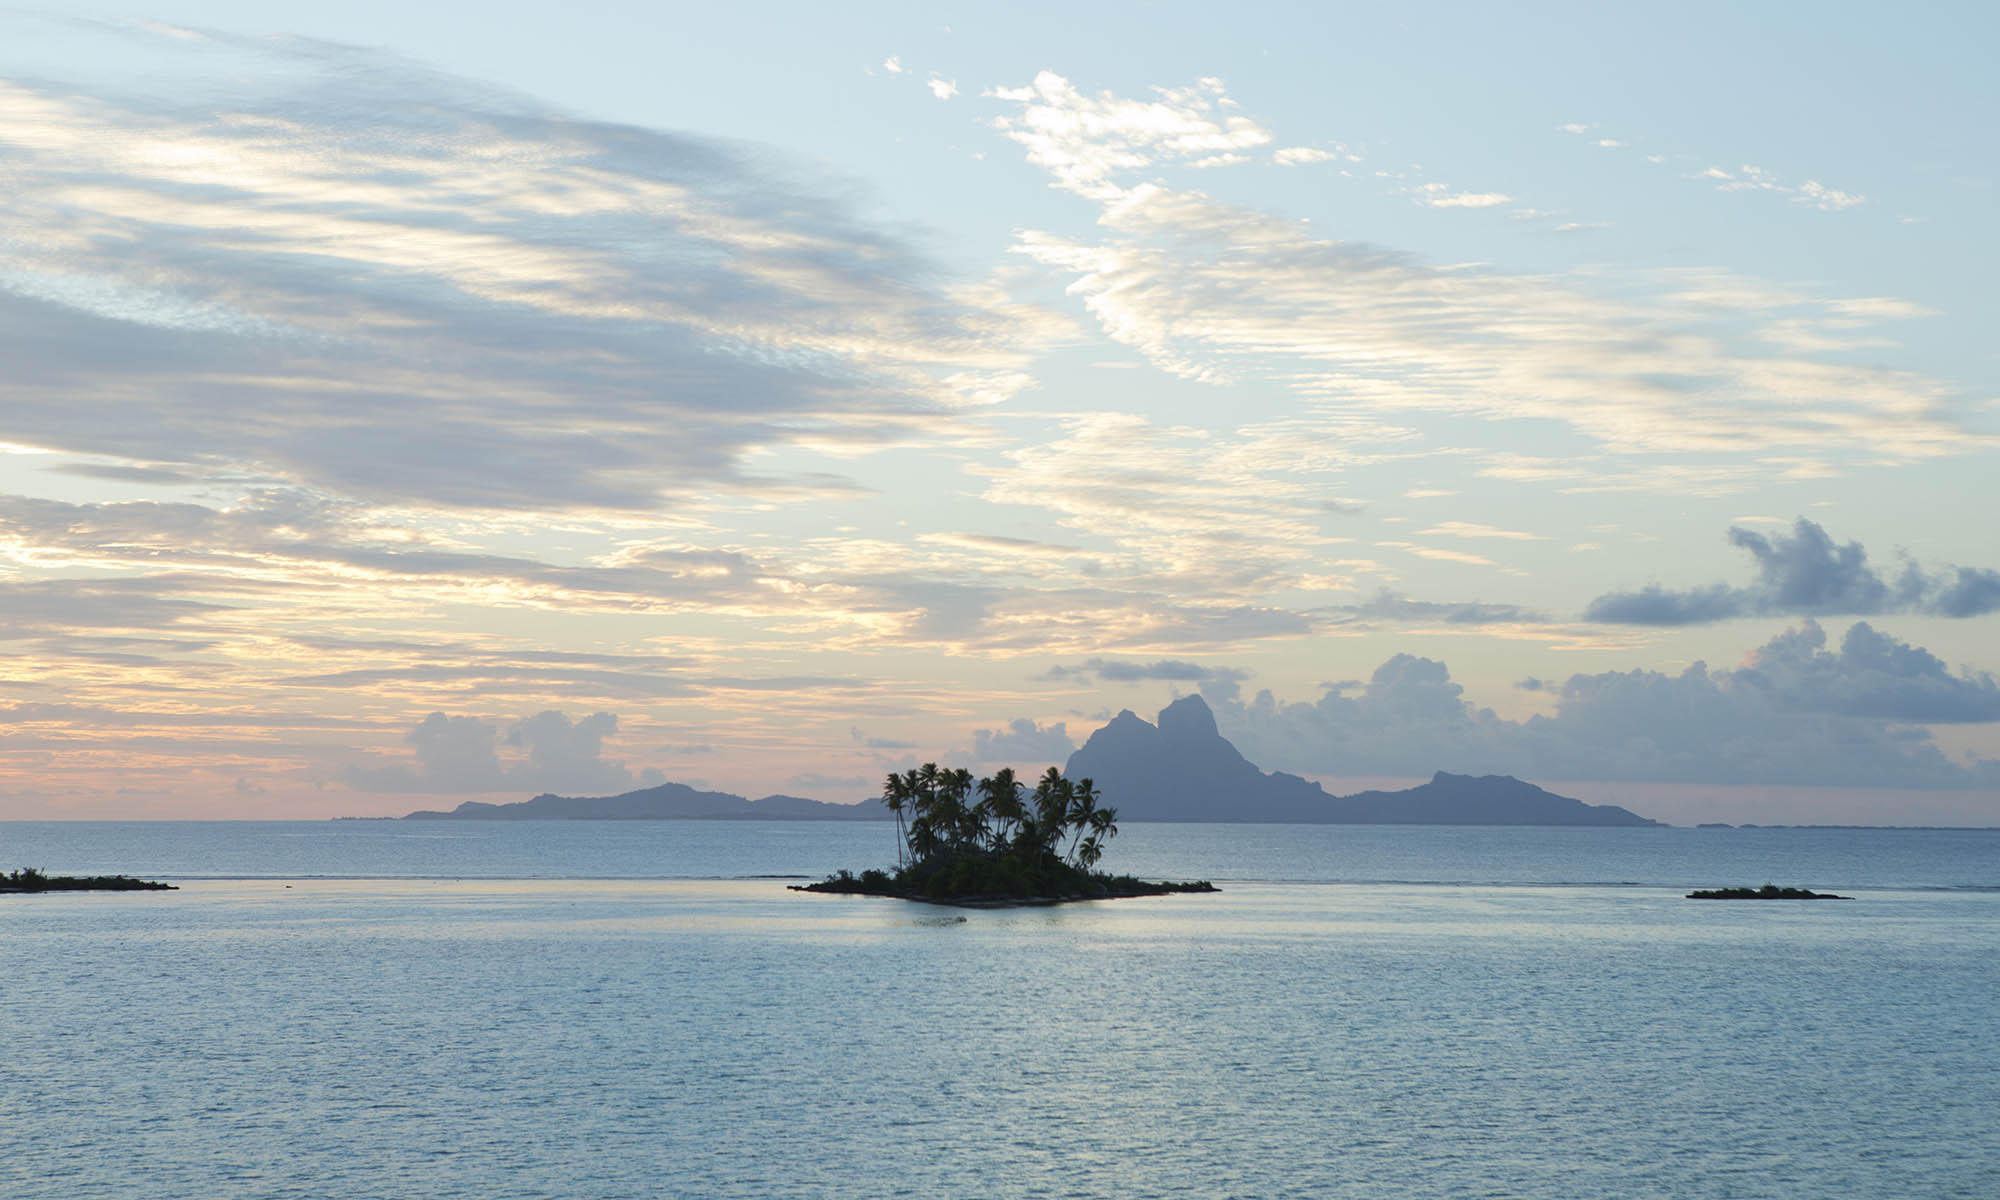 Taha'a Sunsets with Bora Bora in the Distance